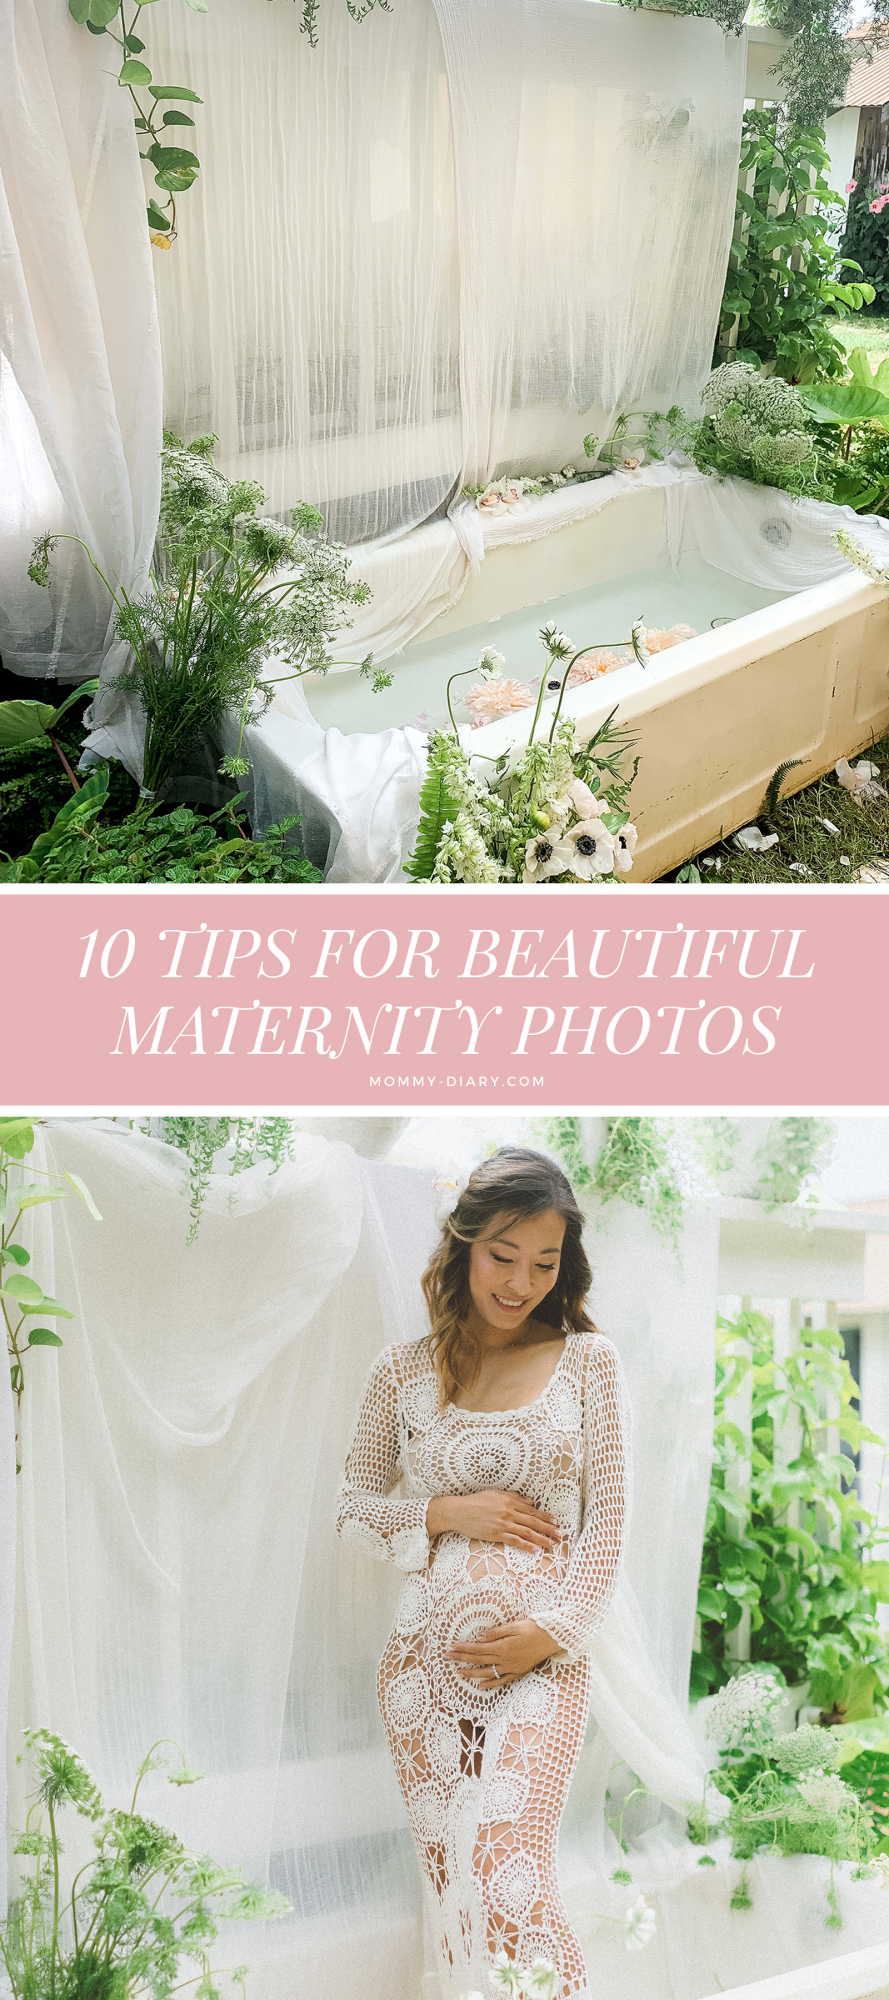 10-tips-for-beautiful-maternity-photos